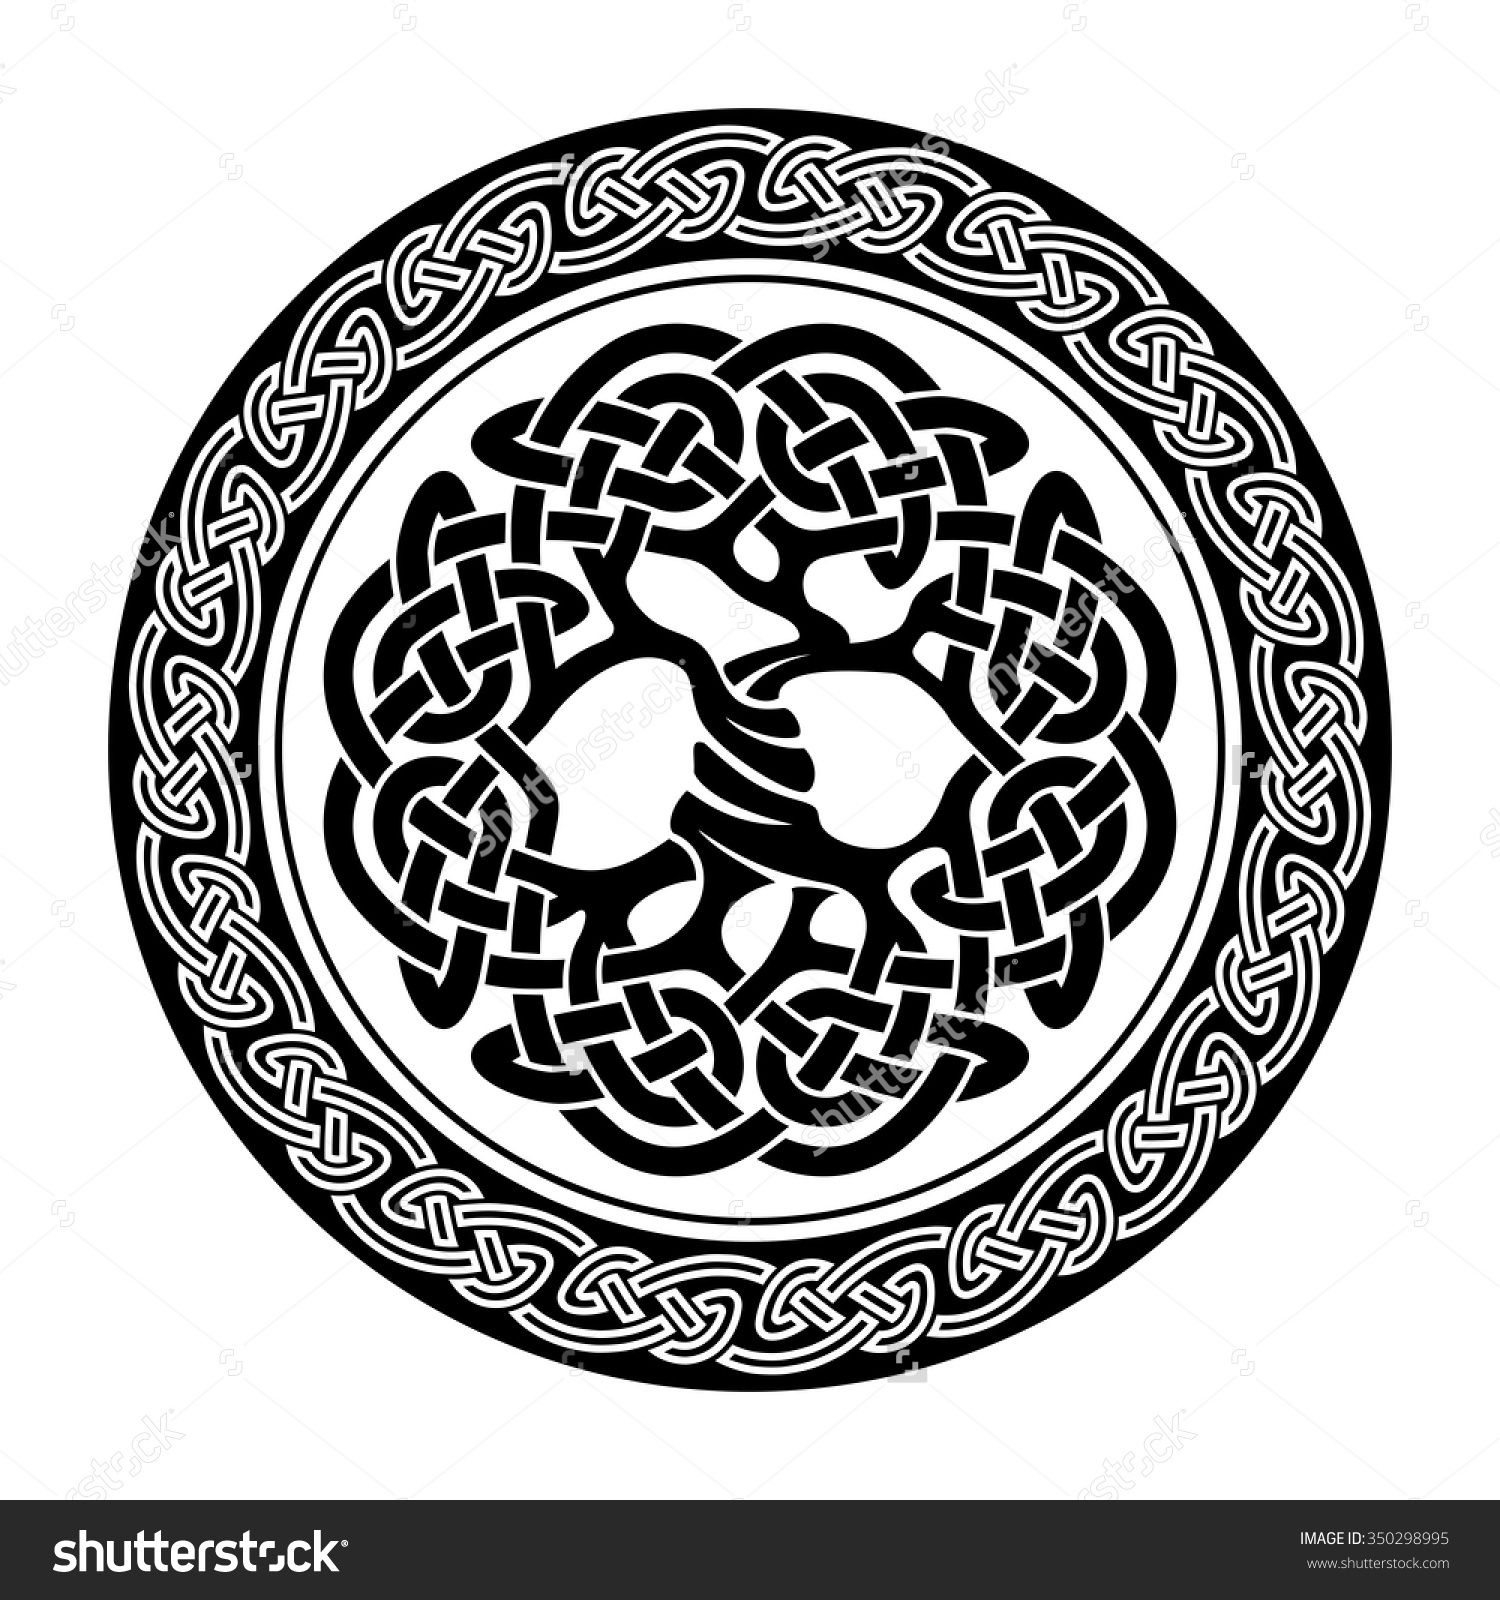 Tree of life ornament - Black And White Illustration Of Celtic Tree Of Life Vector Illustration